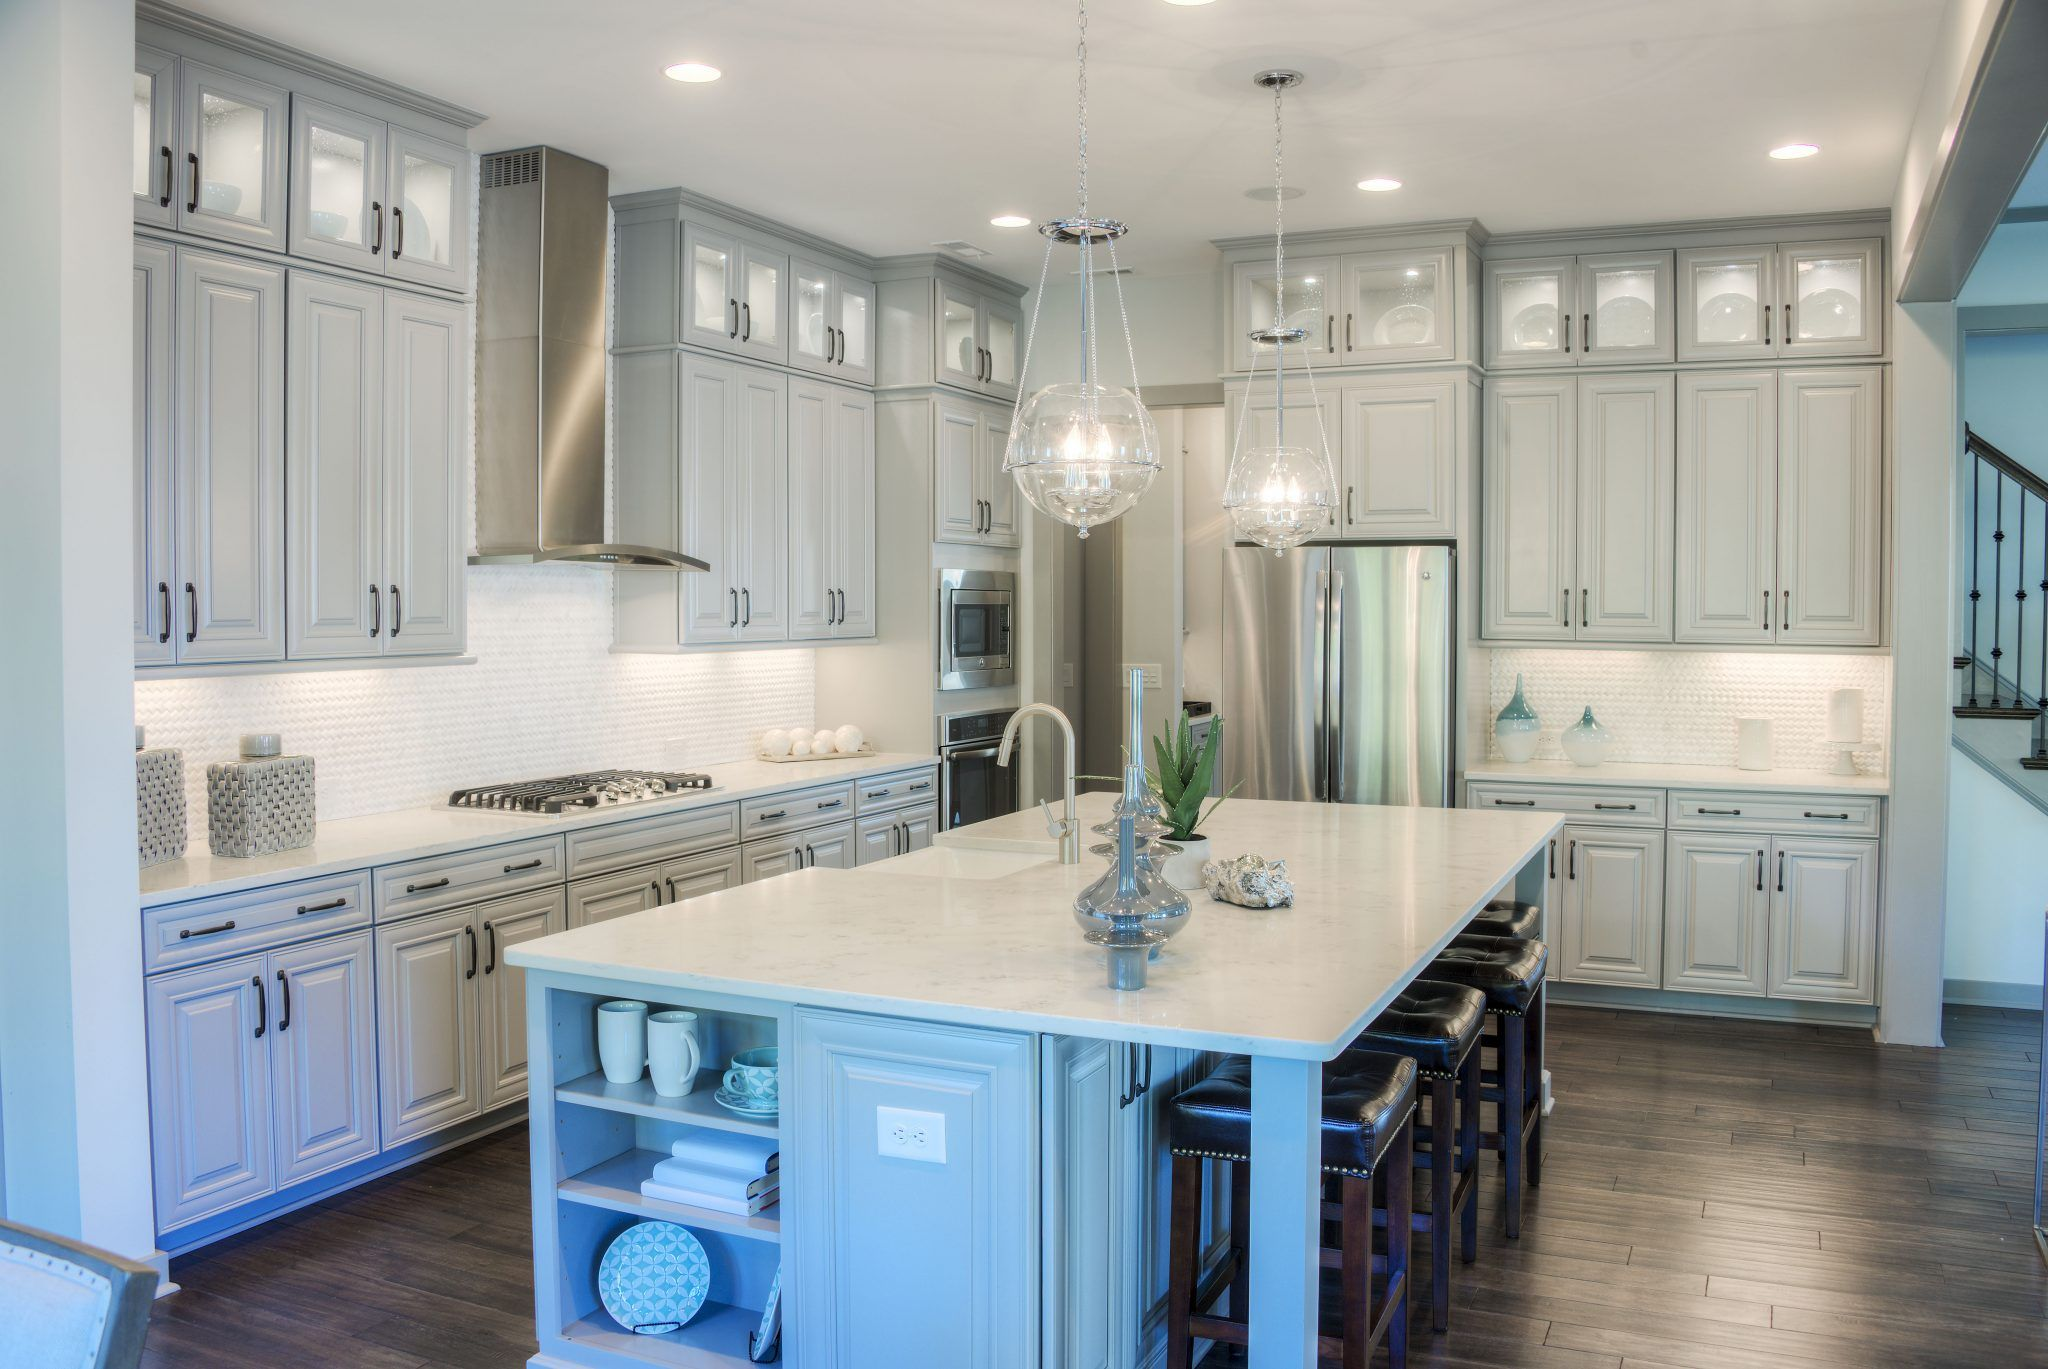 Kitchen featured in The Harmony at Masons Bend By Fielding Homes in Charlotte, SC